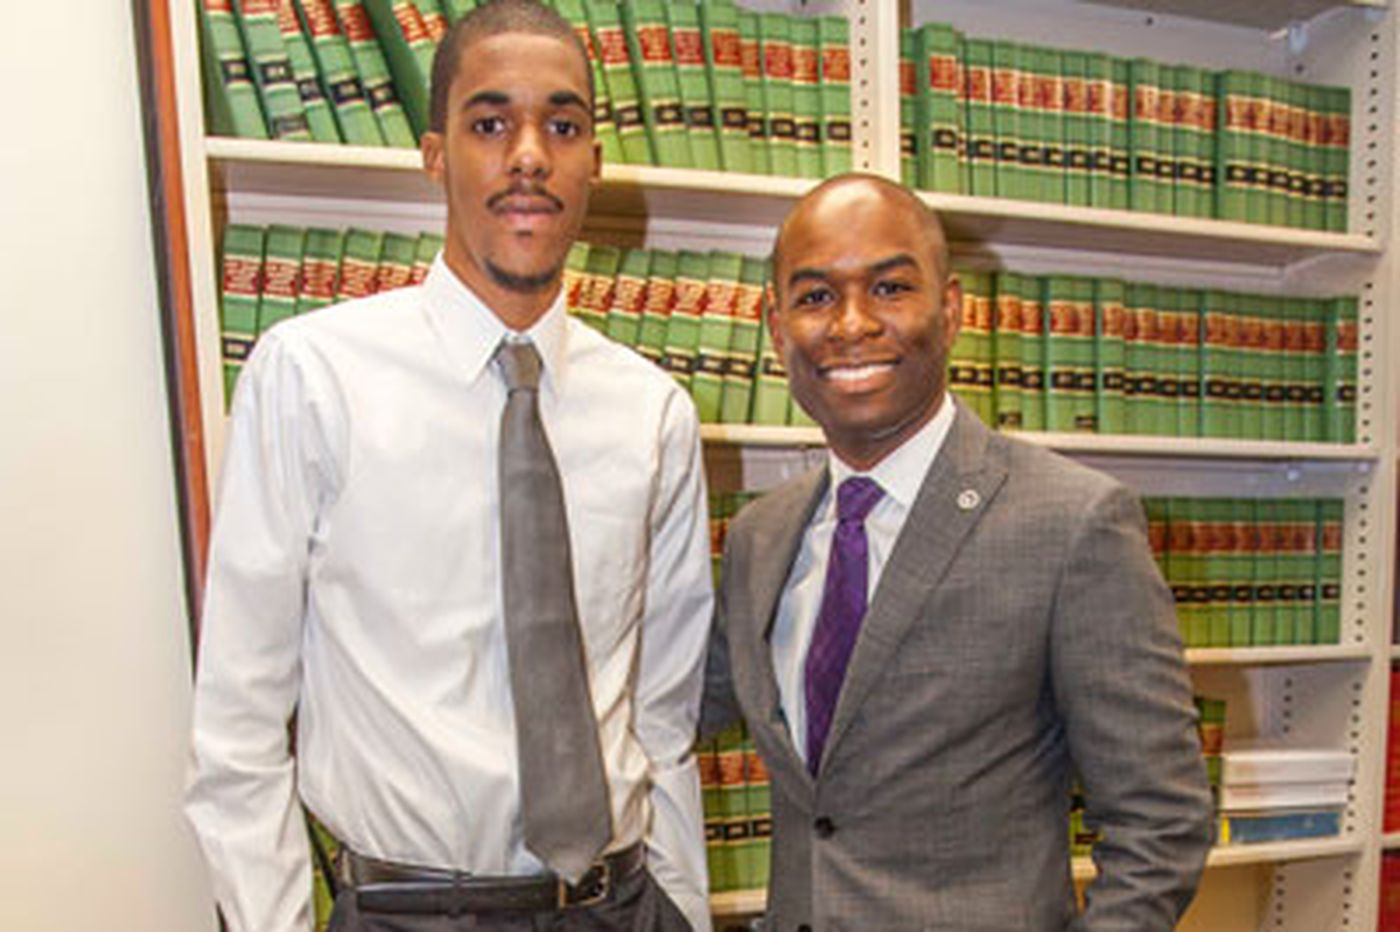 Kevin Riordan: Mentor helps boost New Jersey student into law school